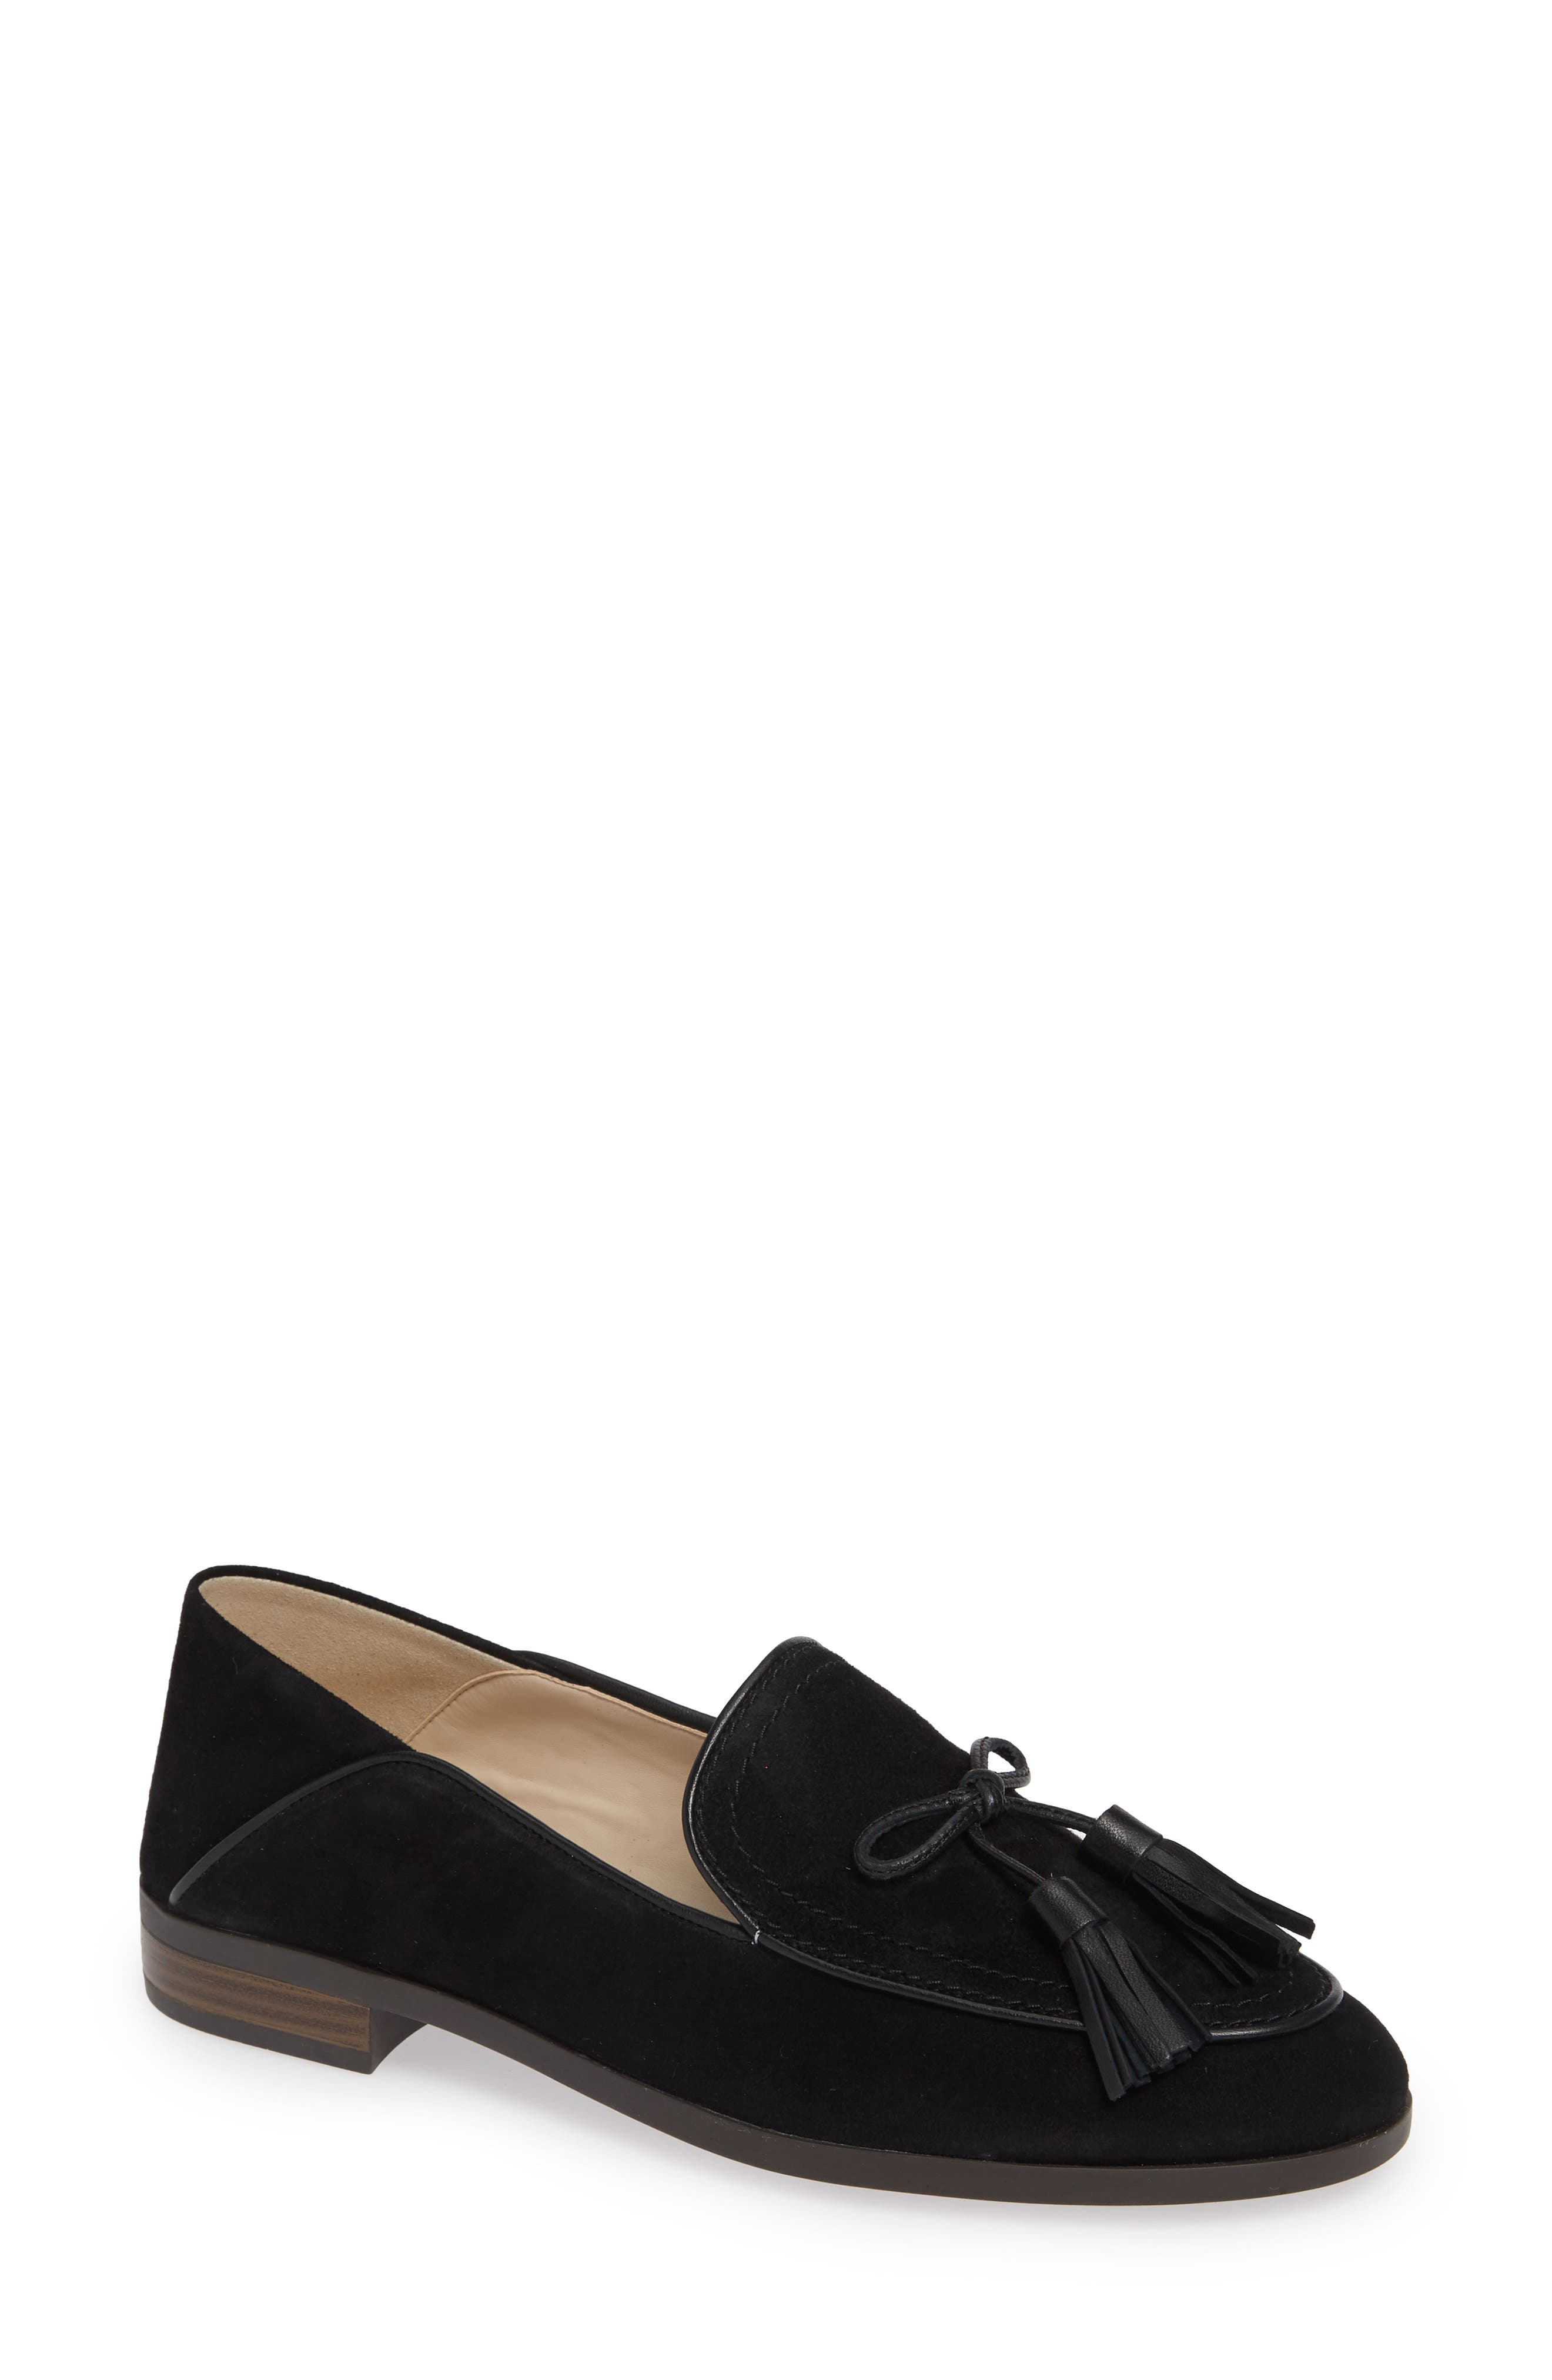 COLE HAAN, Gabrielle Loafer, Main thumbnail 1, color, BLACK SUEDE